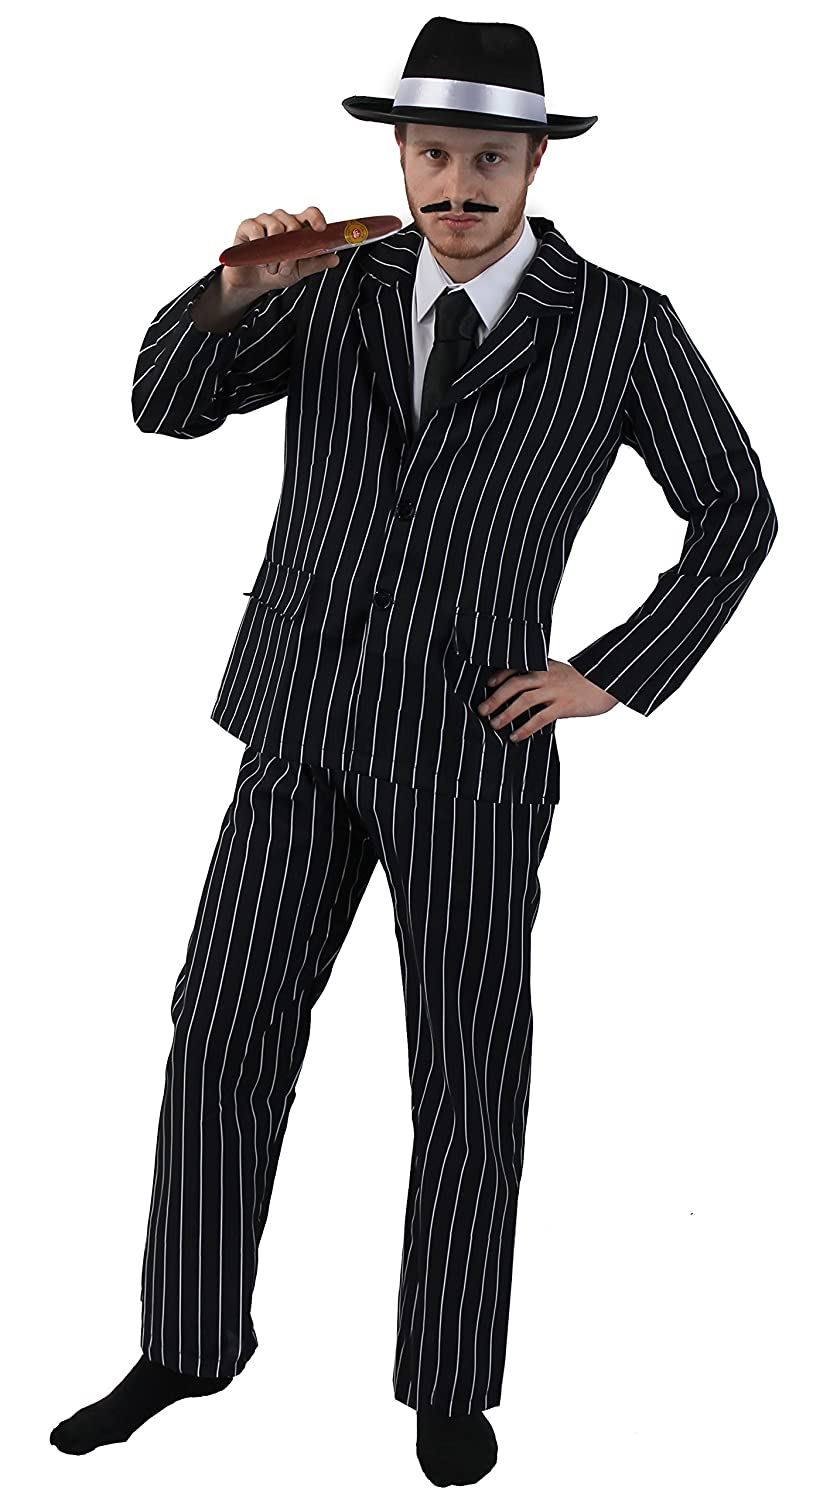 1940s Men's Clothing ADULT 1920s GANGSTER FANCY DRESS COSTUME FOR MEN - PINSTRIPE SUIT JACKET & TROUSERS + BLACK TIE + BLACK TRILBY WITH WHITE BAND+ CIGAR + SPIV MOUSTACHE BY ILOVEFANCYDRESS® - SMALL £22.99 AT vintagedancer.com